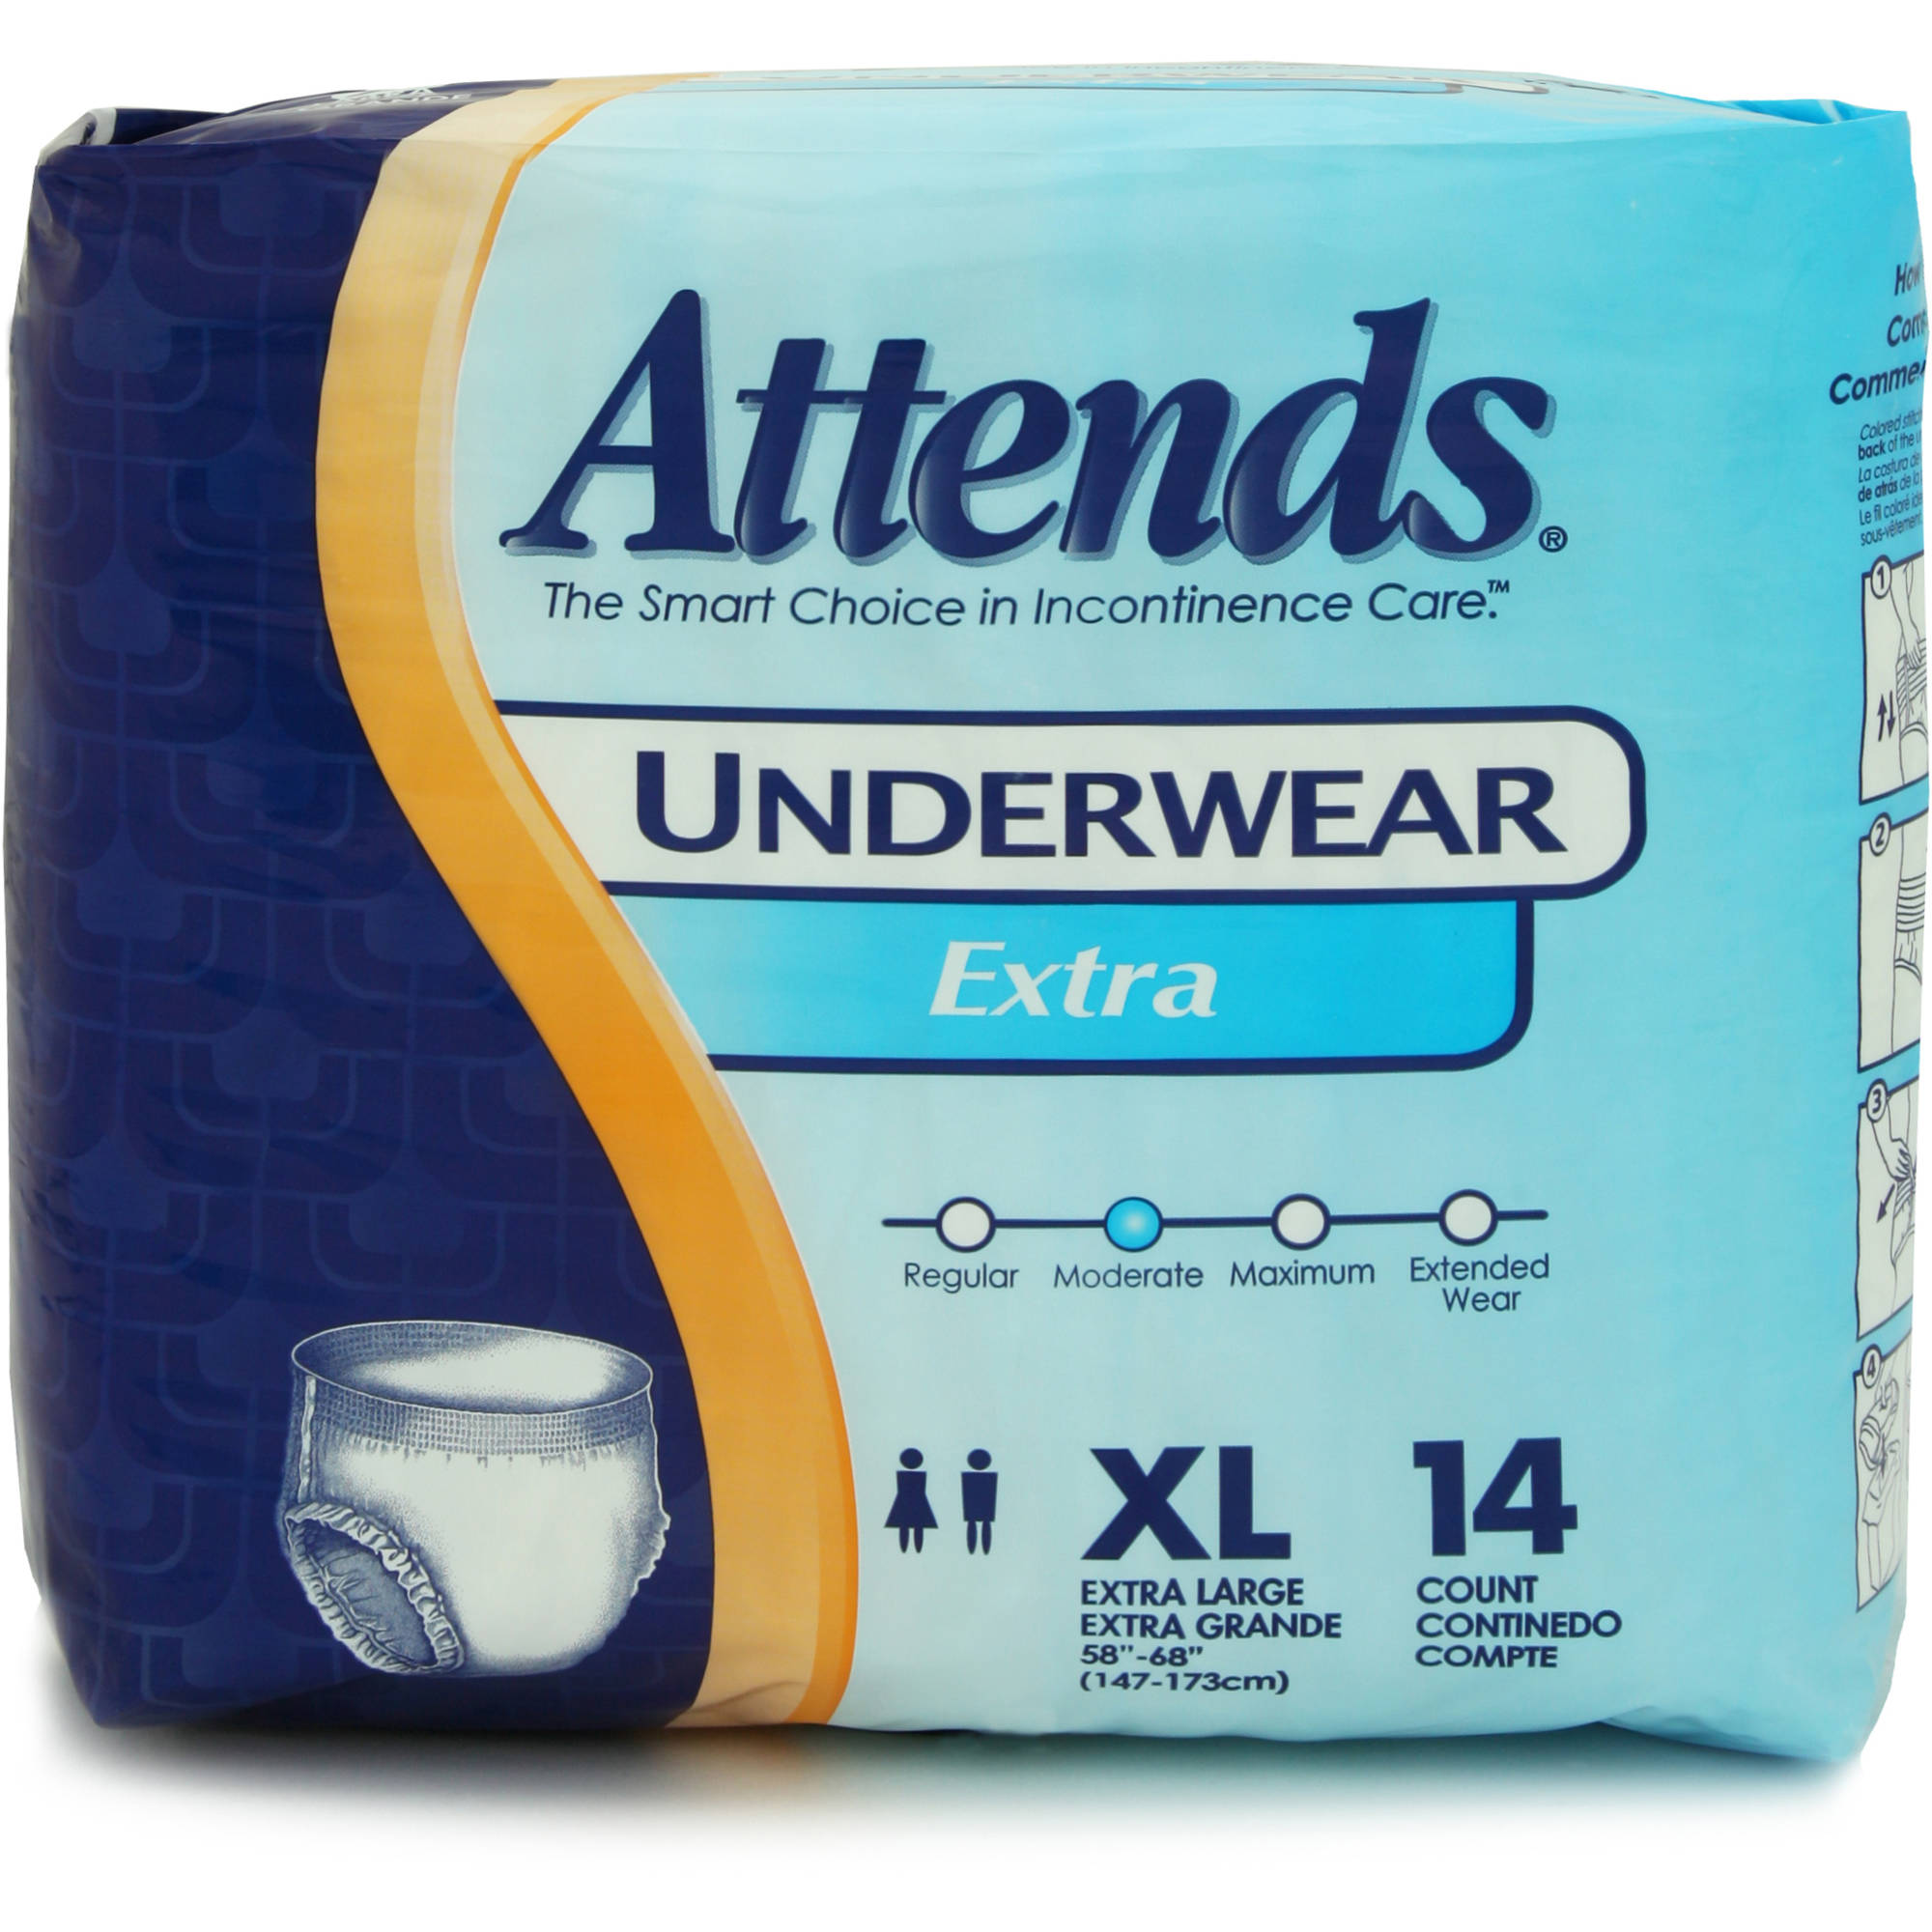 Attends Extra Absorbency Extra Large Protective Underwear, 14ct